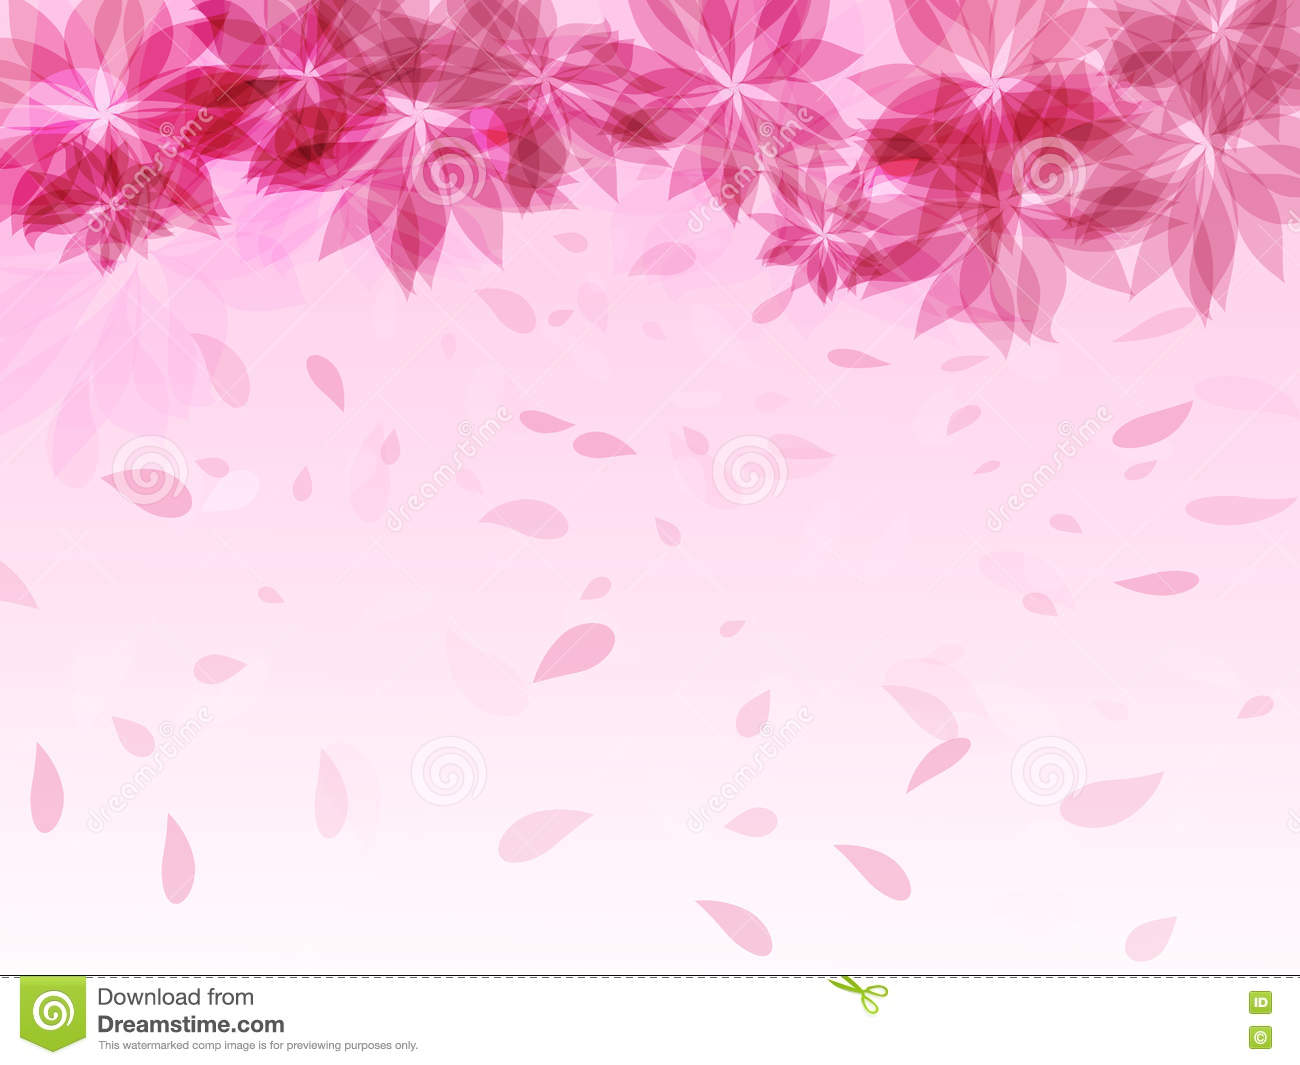 Hd Girl Wallpaper Print Abstract Background With Pink Flowers And Falling Petals